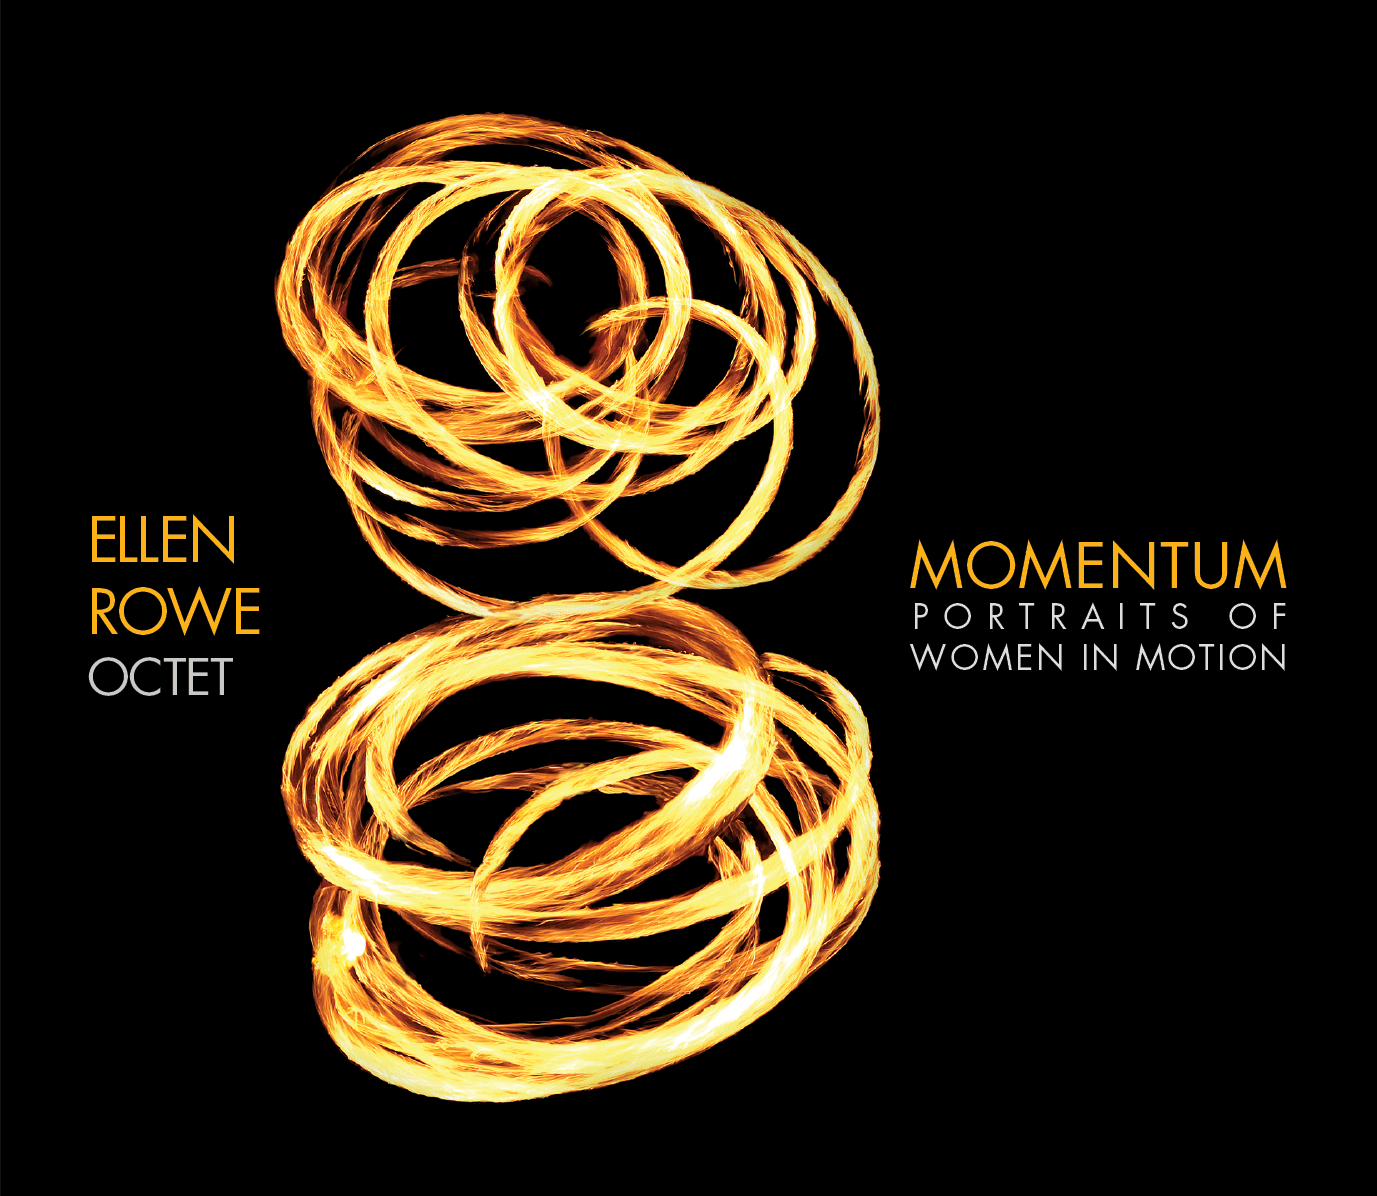 Momentum-Portraits Of Women In Motion CD – Ellen Rowe Octet